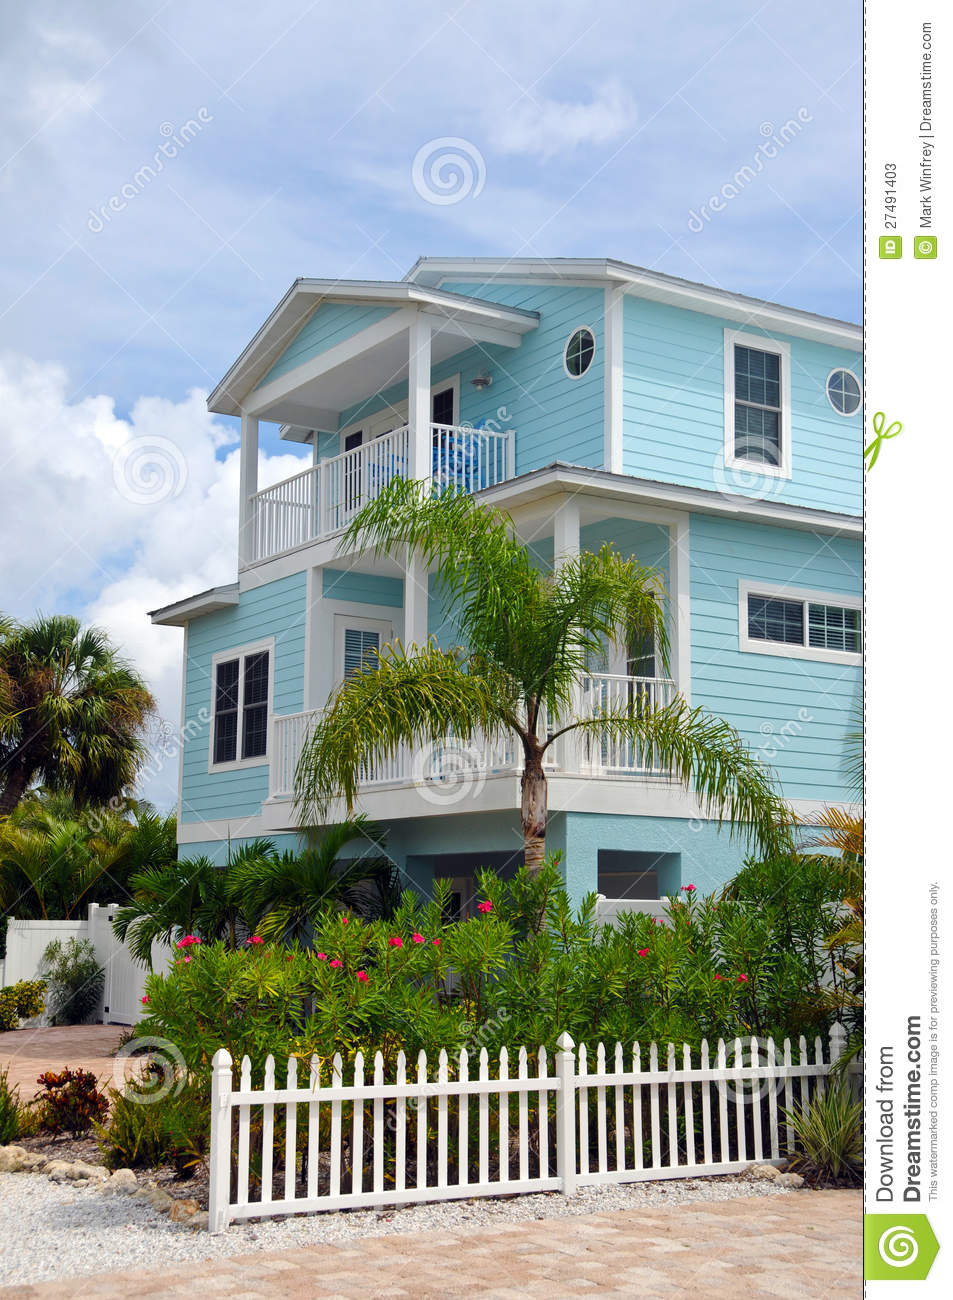 Two story beach house stock photos image 27491403 for Two story beach house